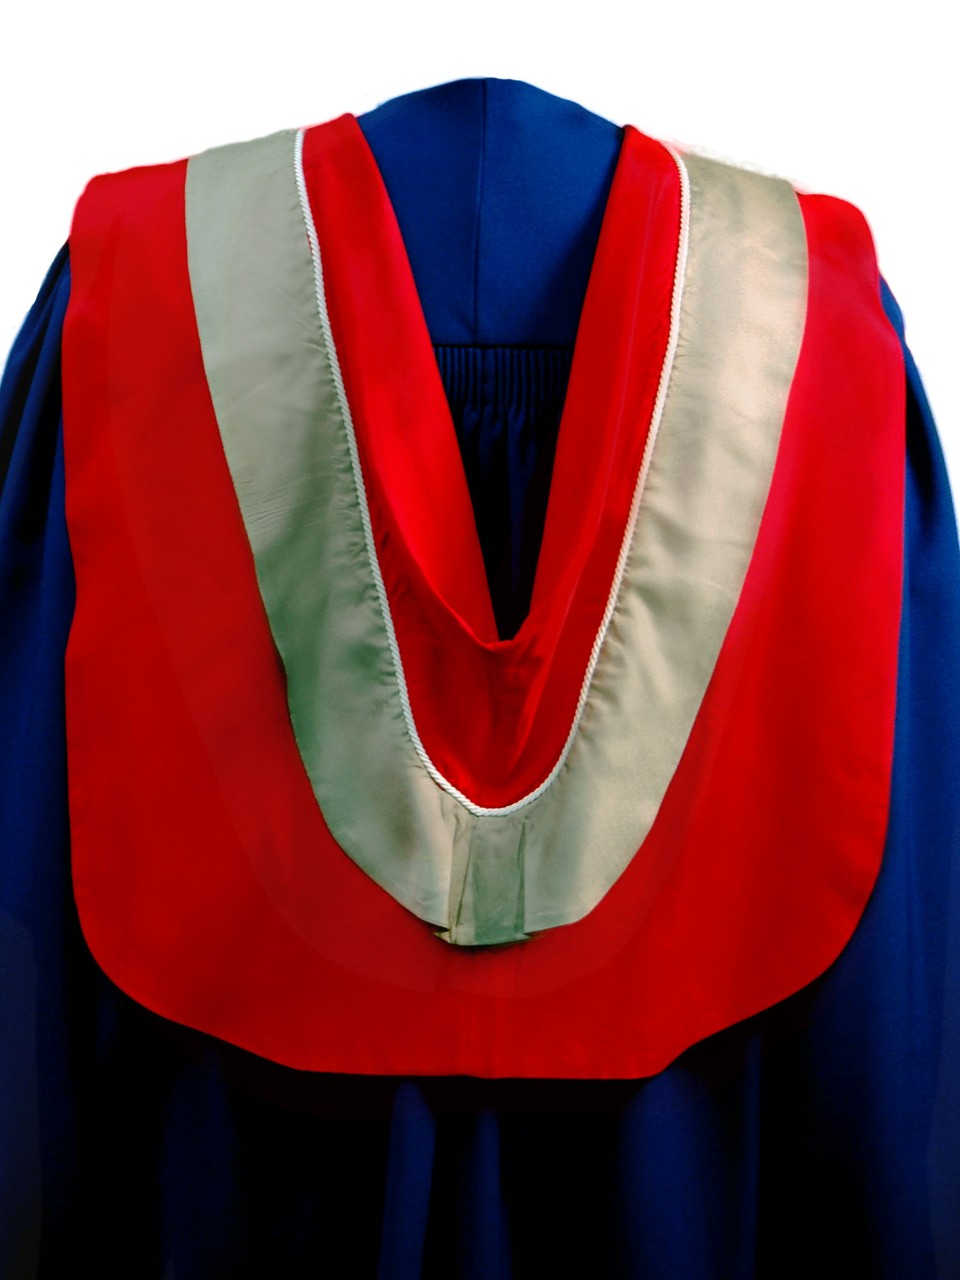 The Master of Science in the Faculty of Communication, Arts and Technology hood is red with wide fawn border and white cording